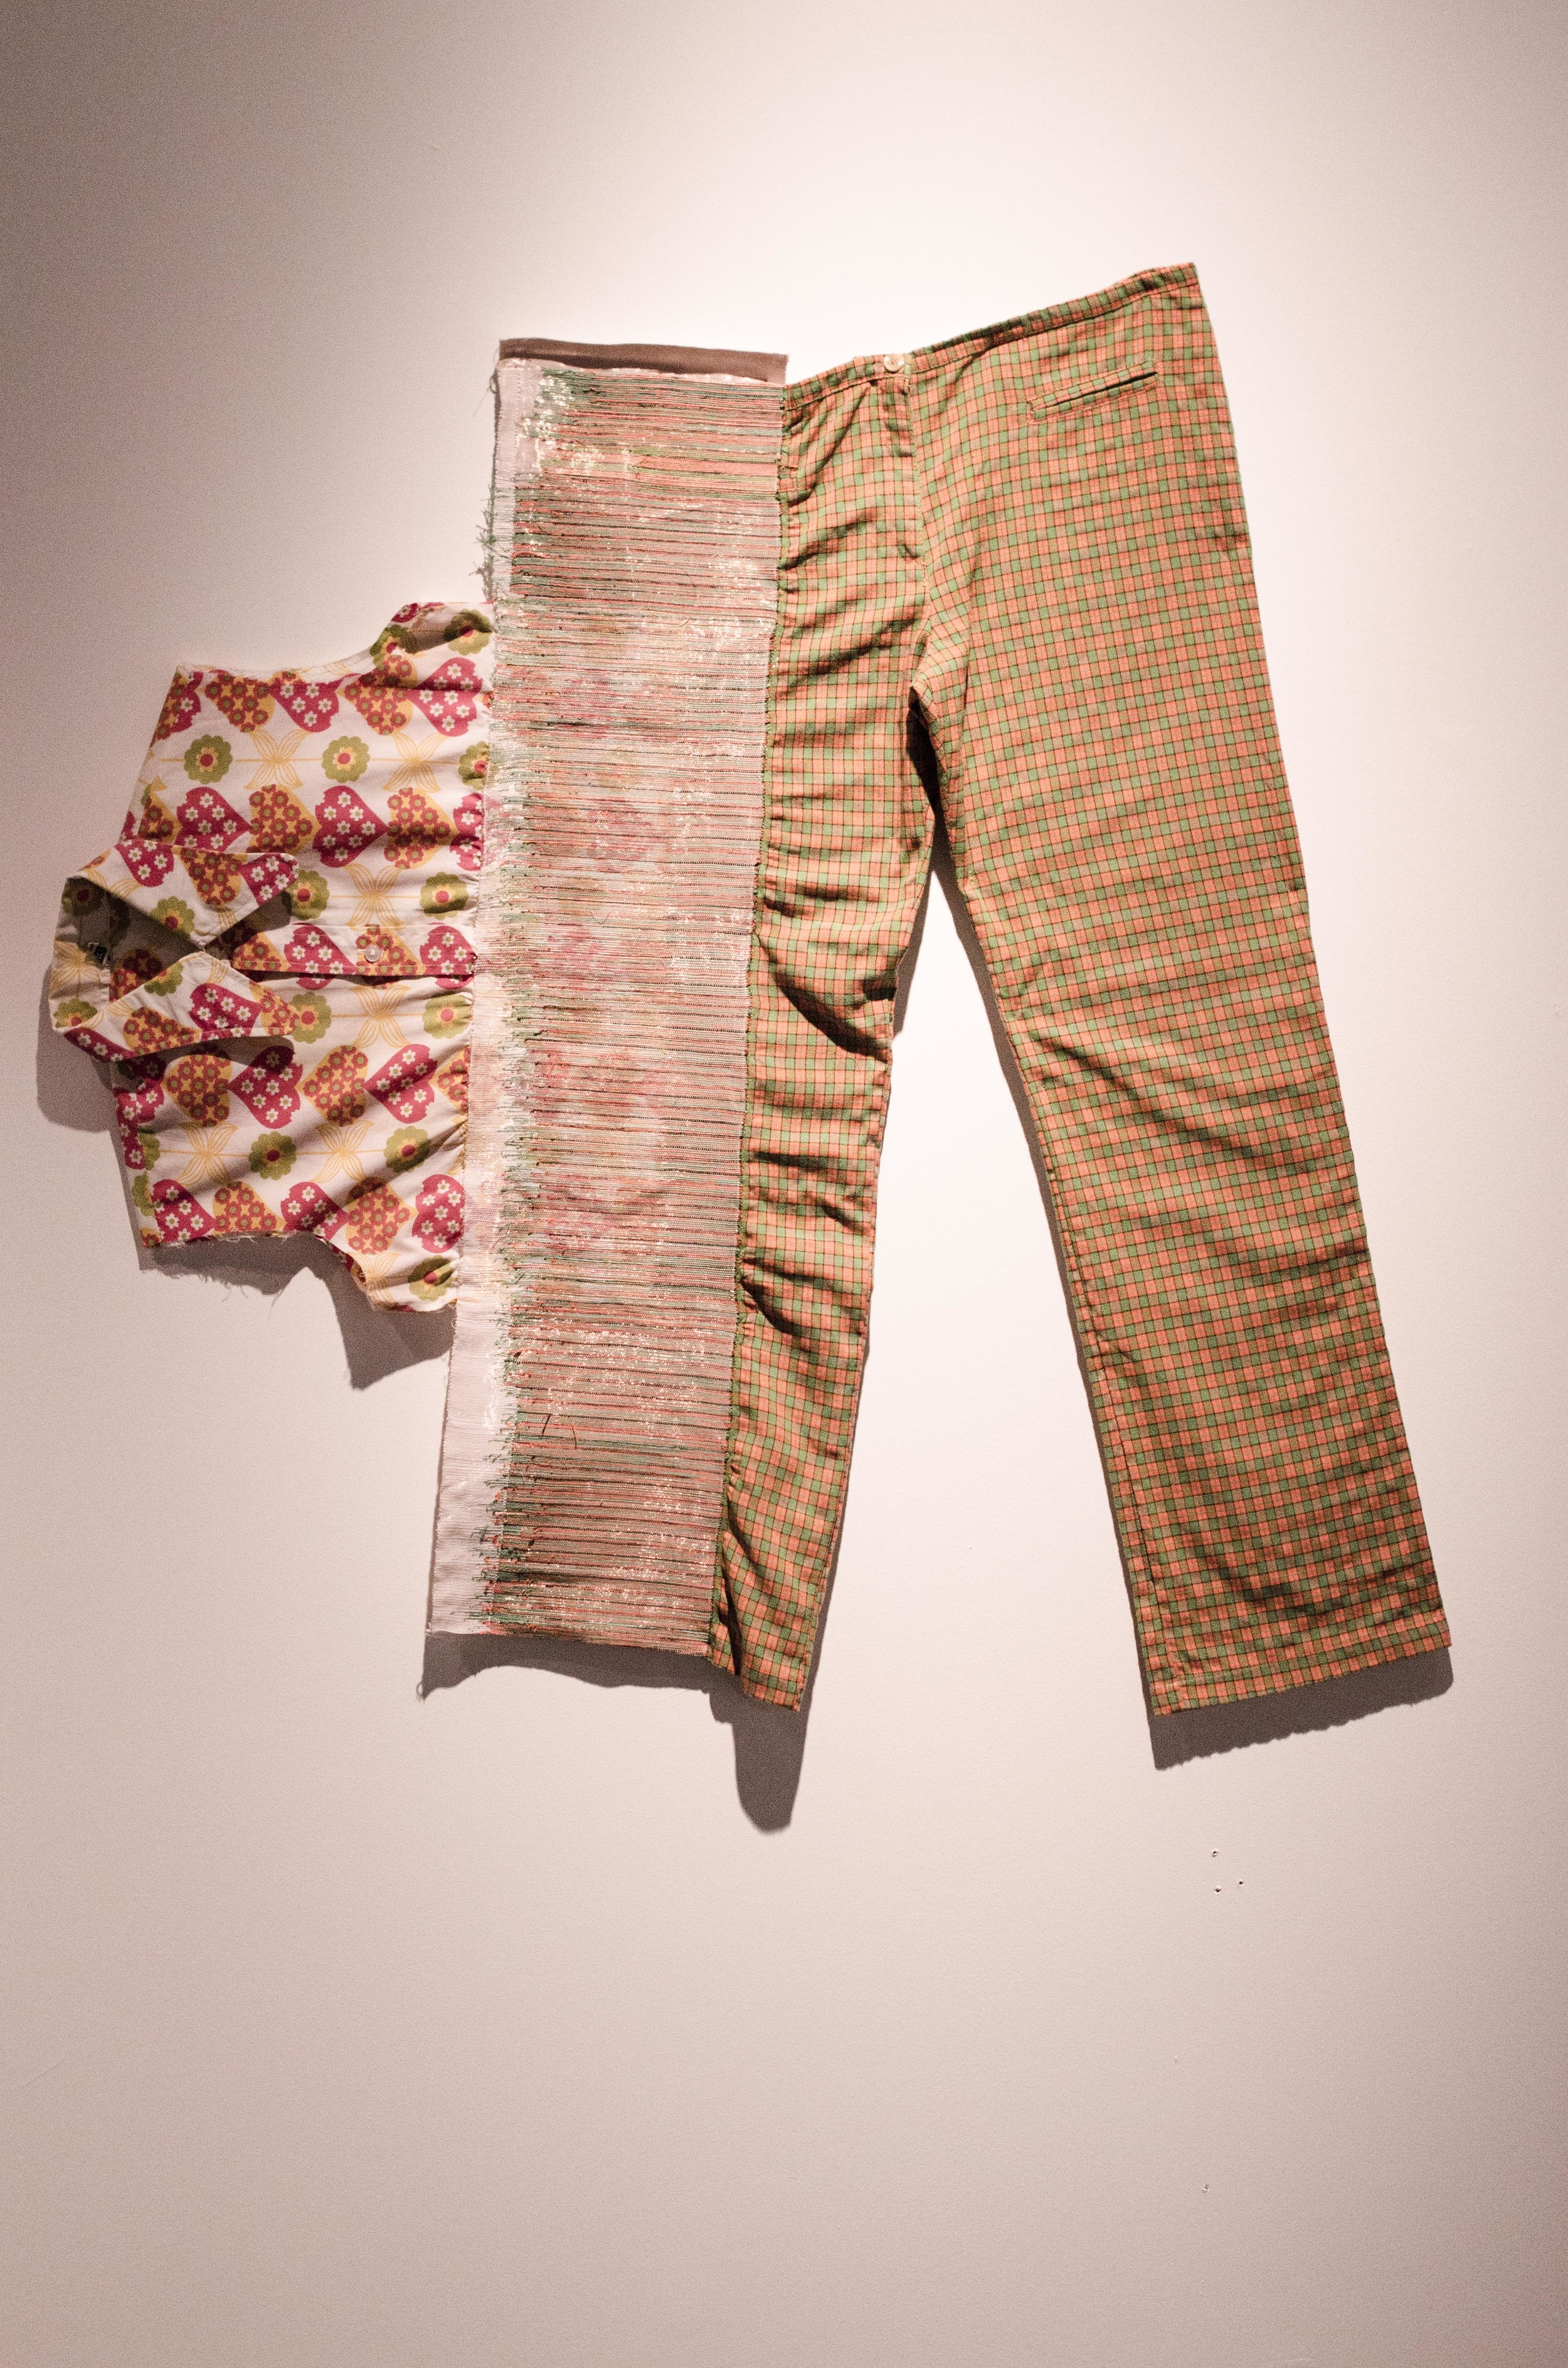 Trousers and Shirt, 2012